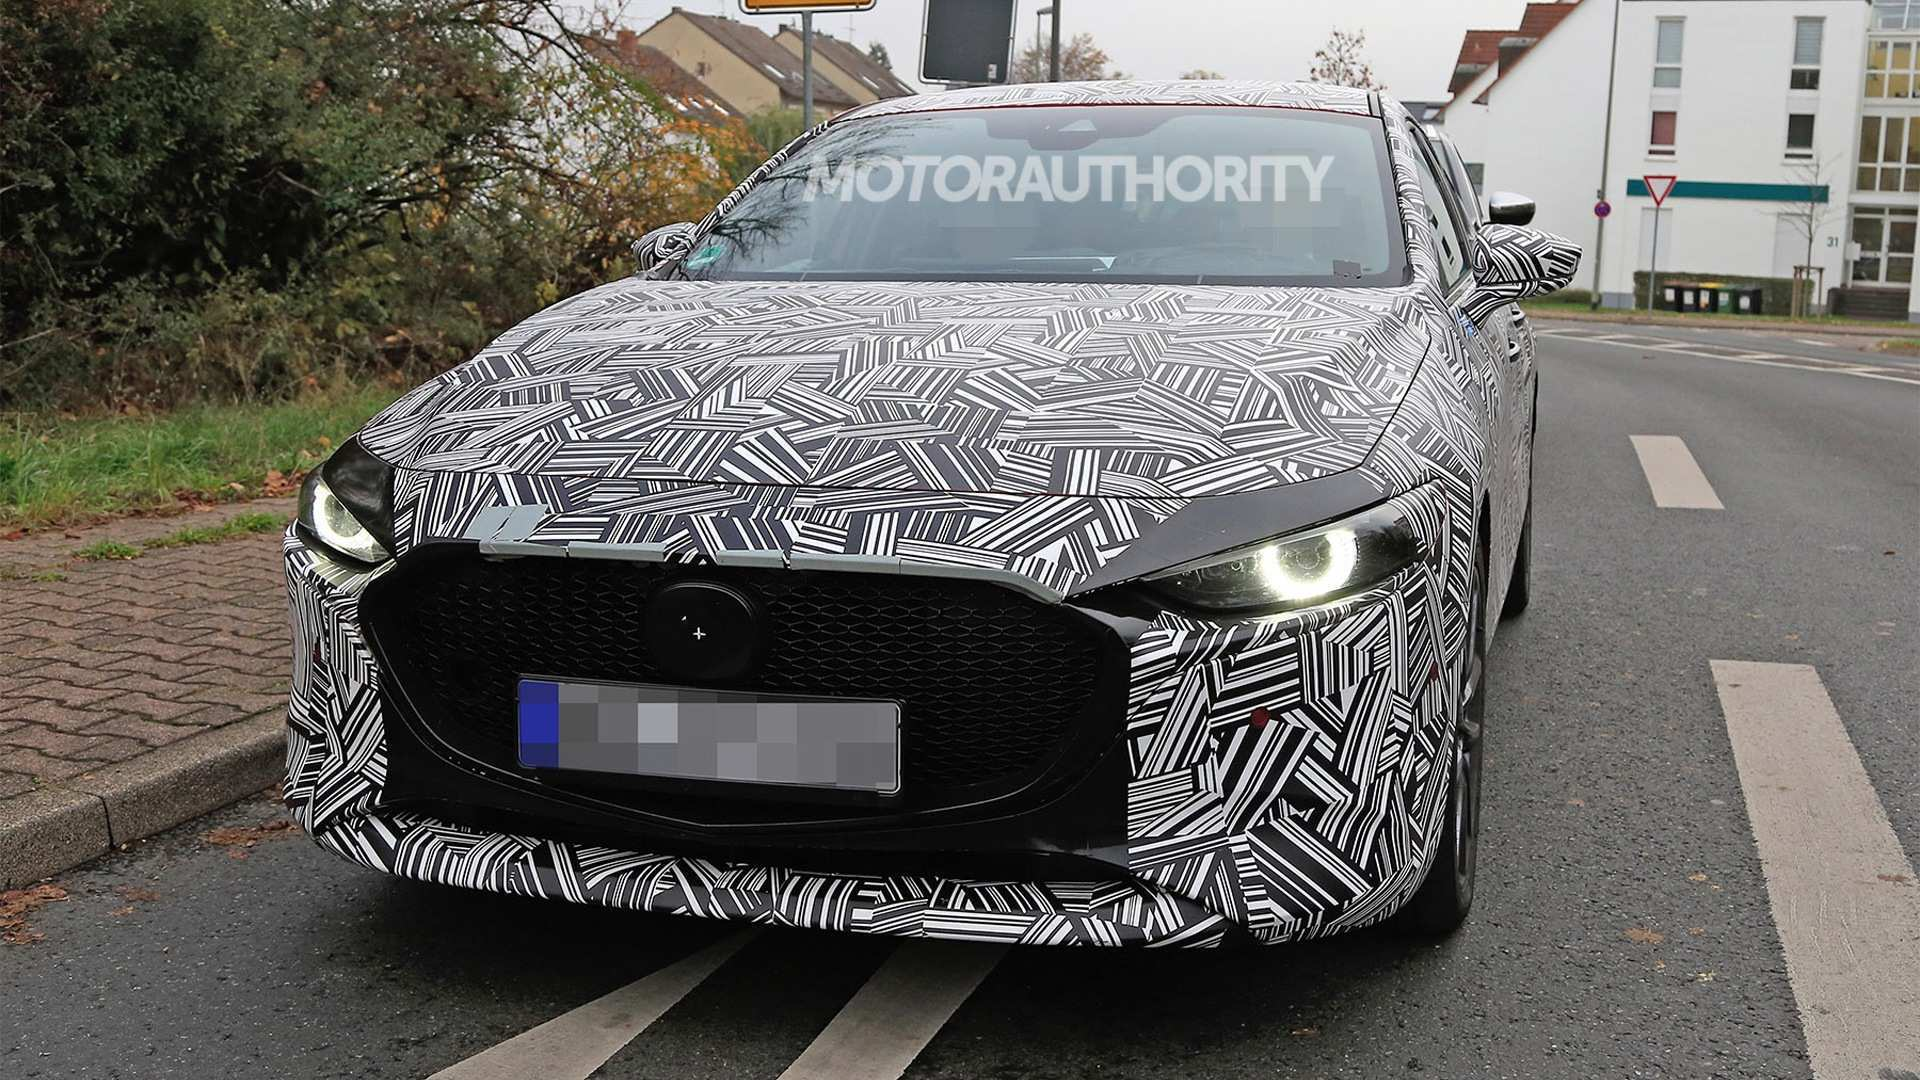 96 New 2020 Mazda 3 Spy Shots New Concept for 2020 Mazda 3 Spy Shots